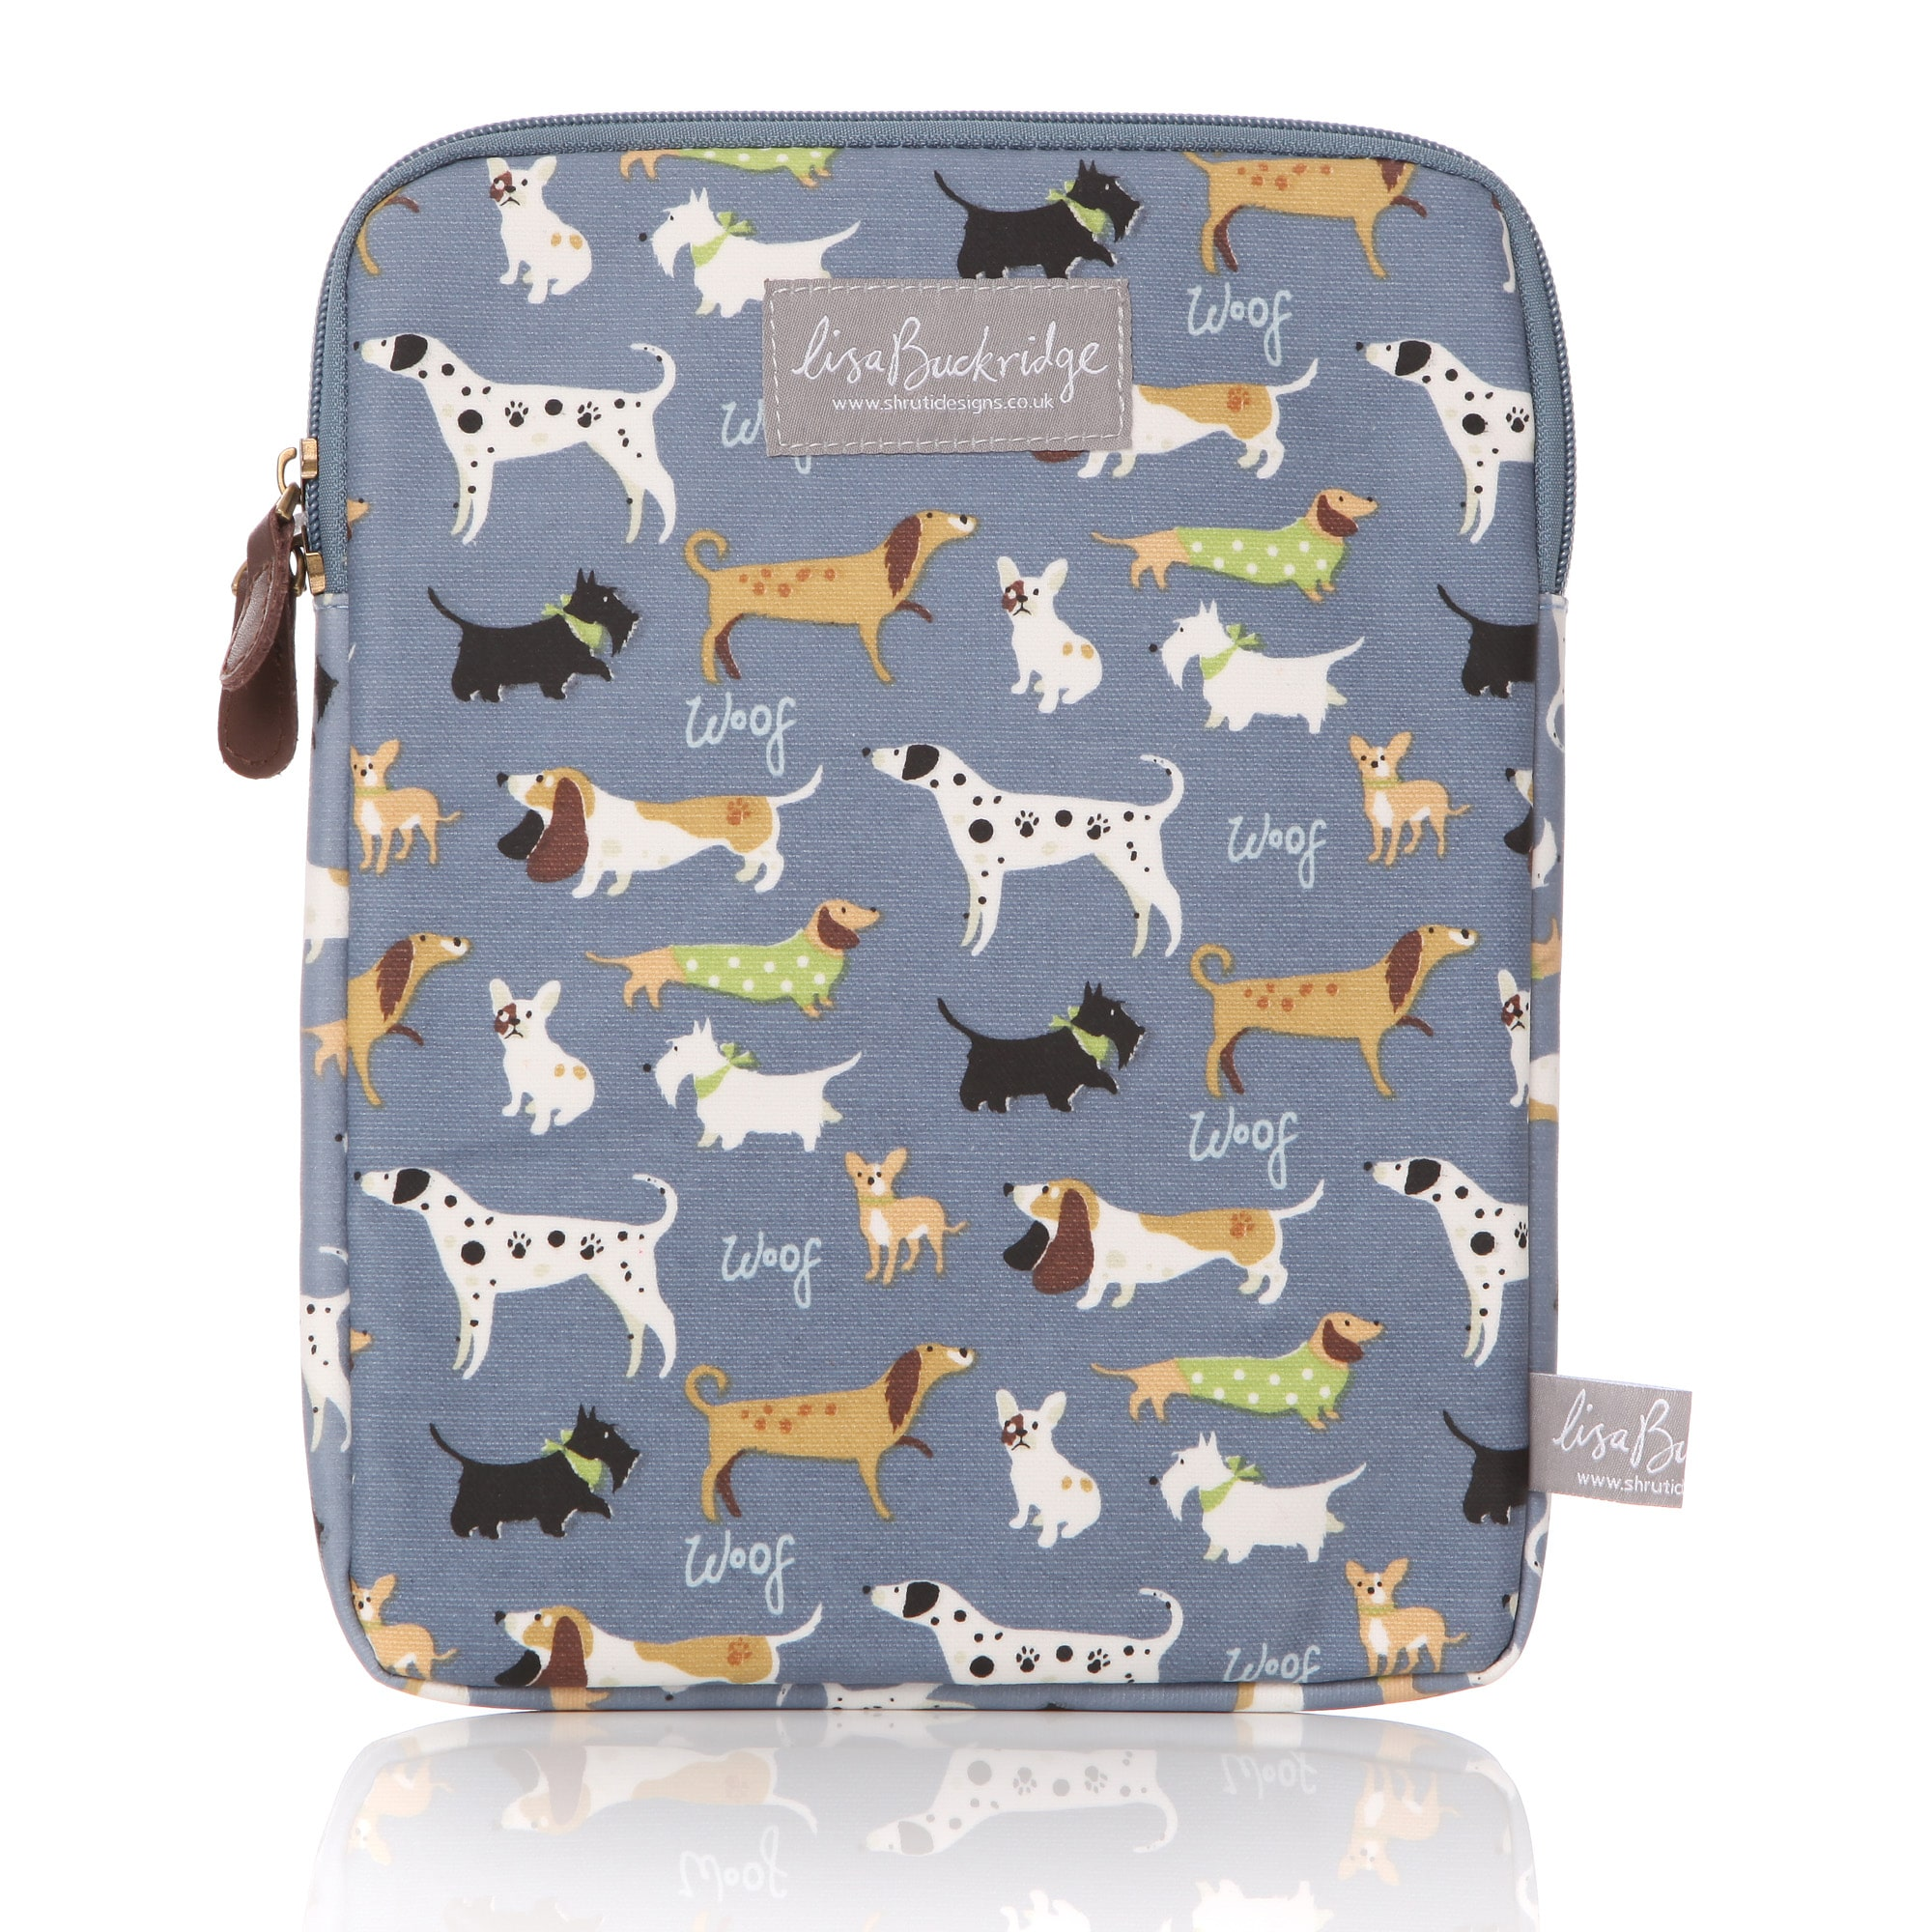 Lisa Buckridge Walkies oilcloth ipad sleeve blue